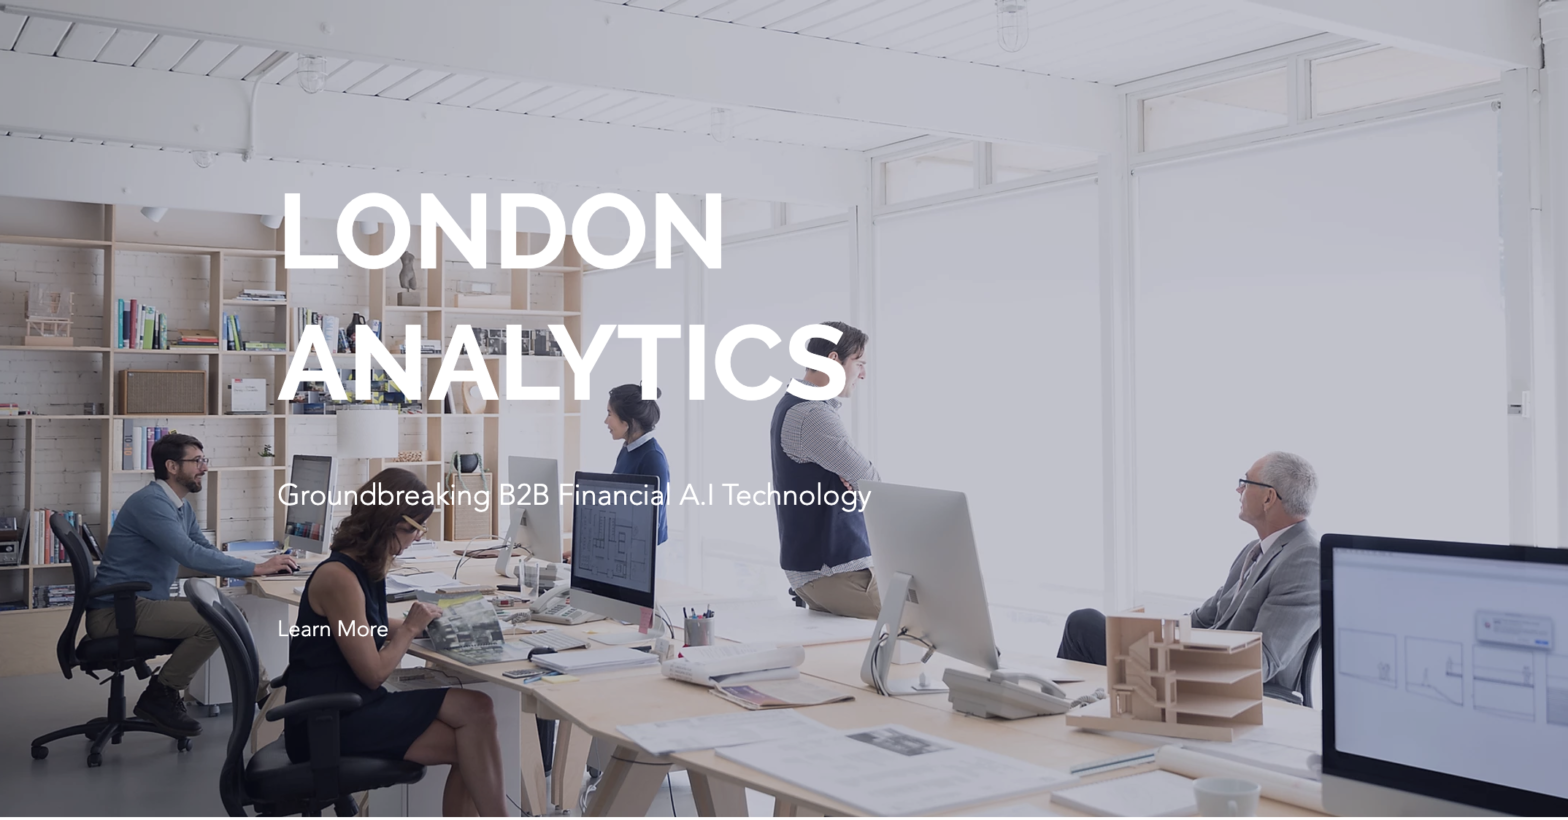 Interview with Kira Begunova, co-founder of FinTecH company London Analytics